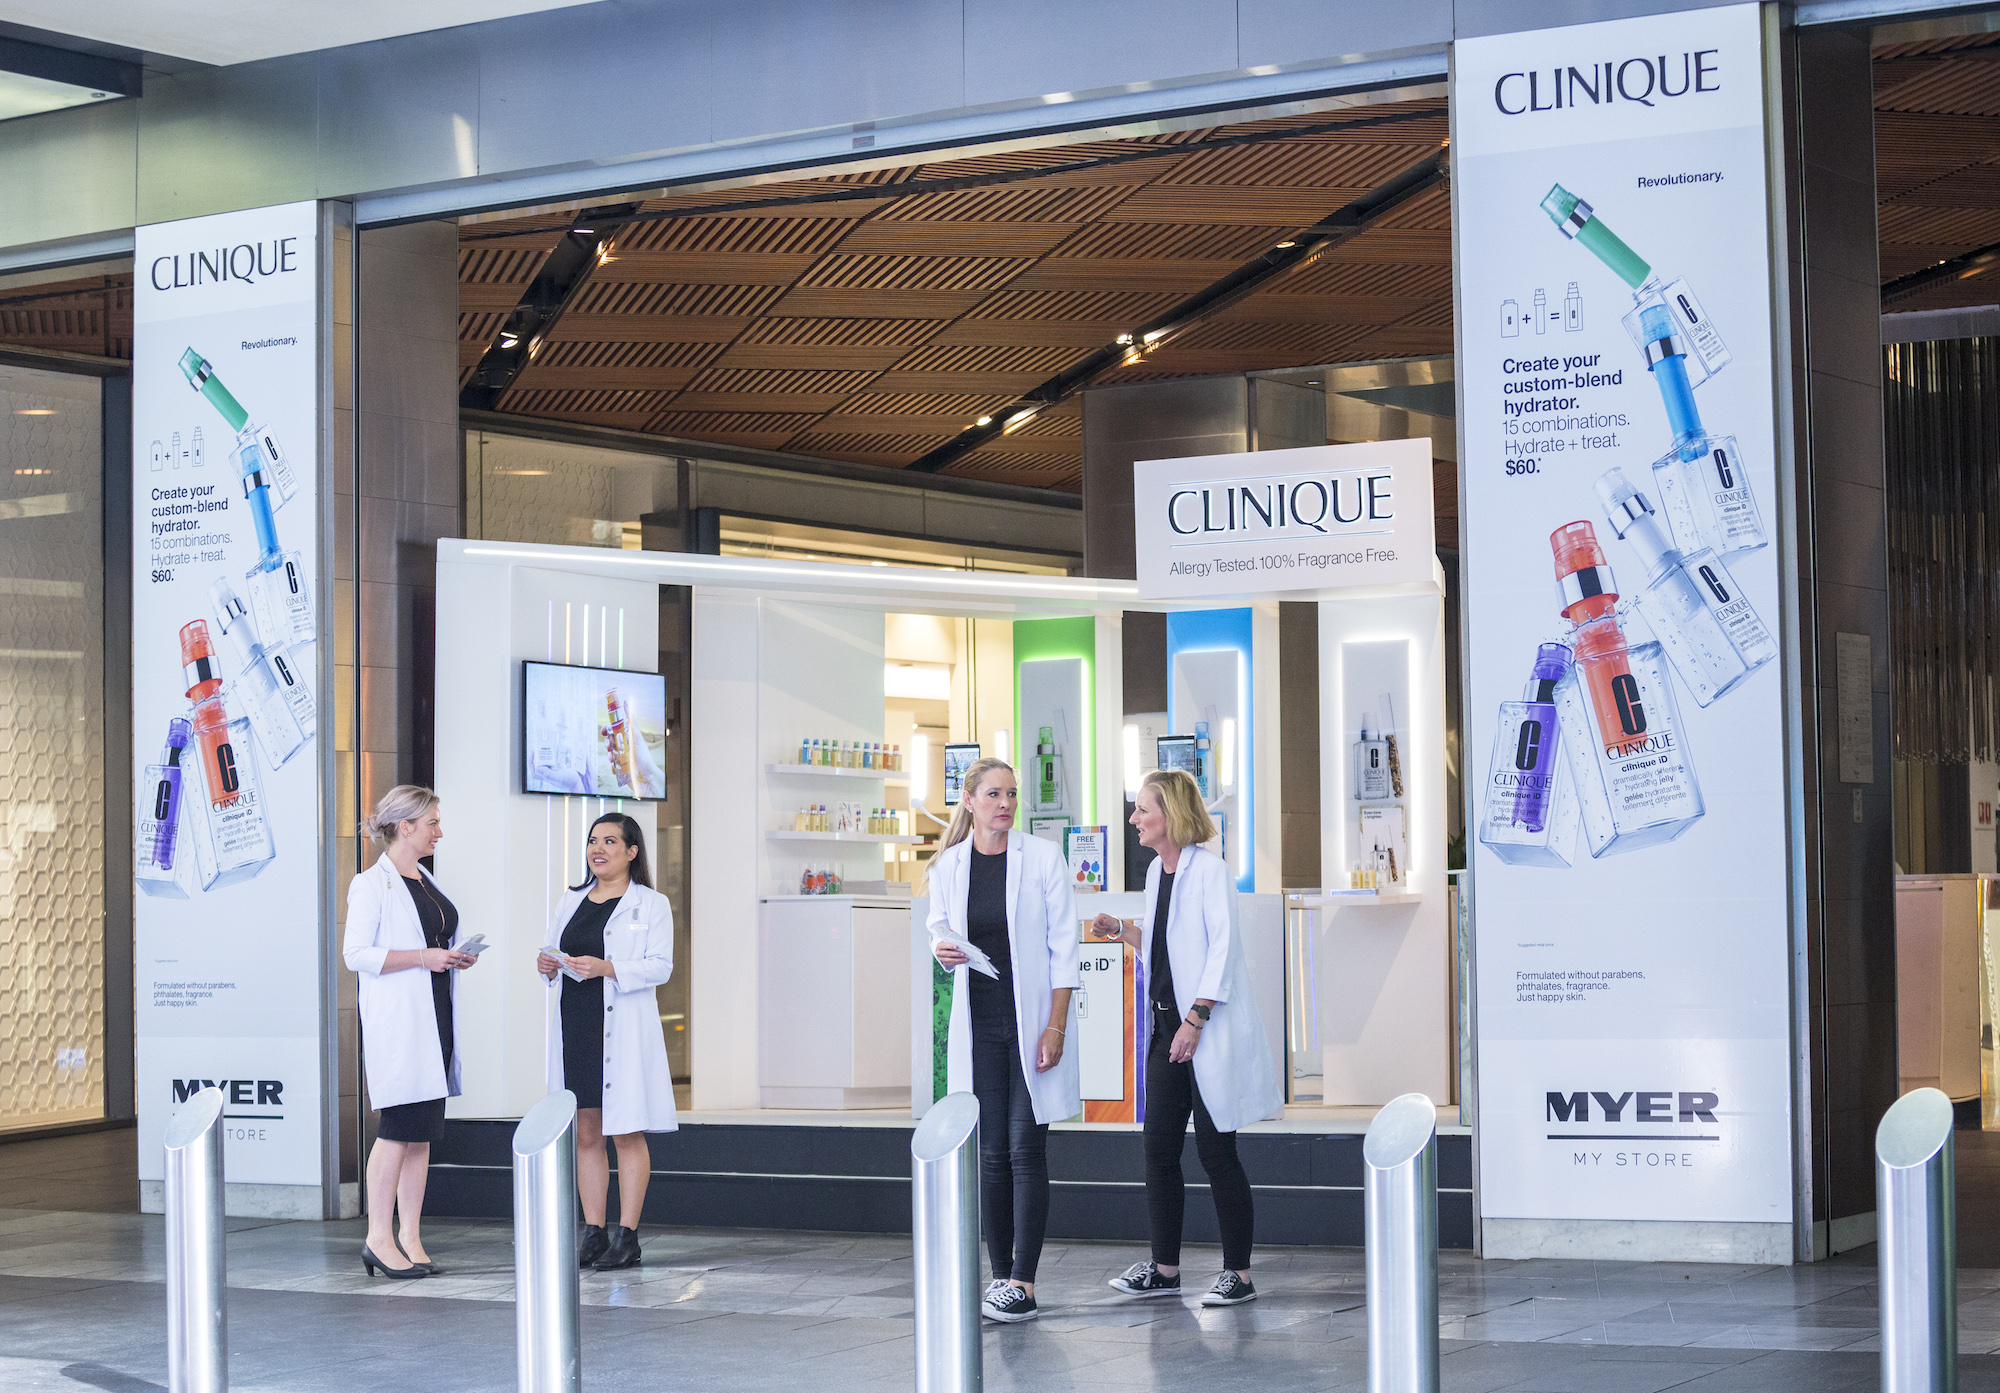 Clinique at Westfield Sydney, 2019